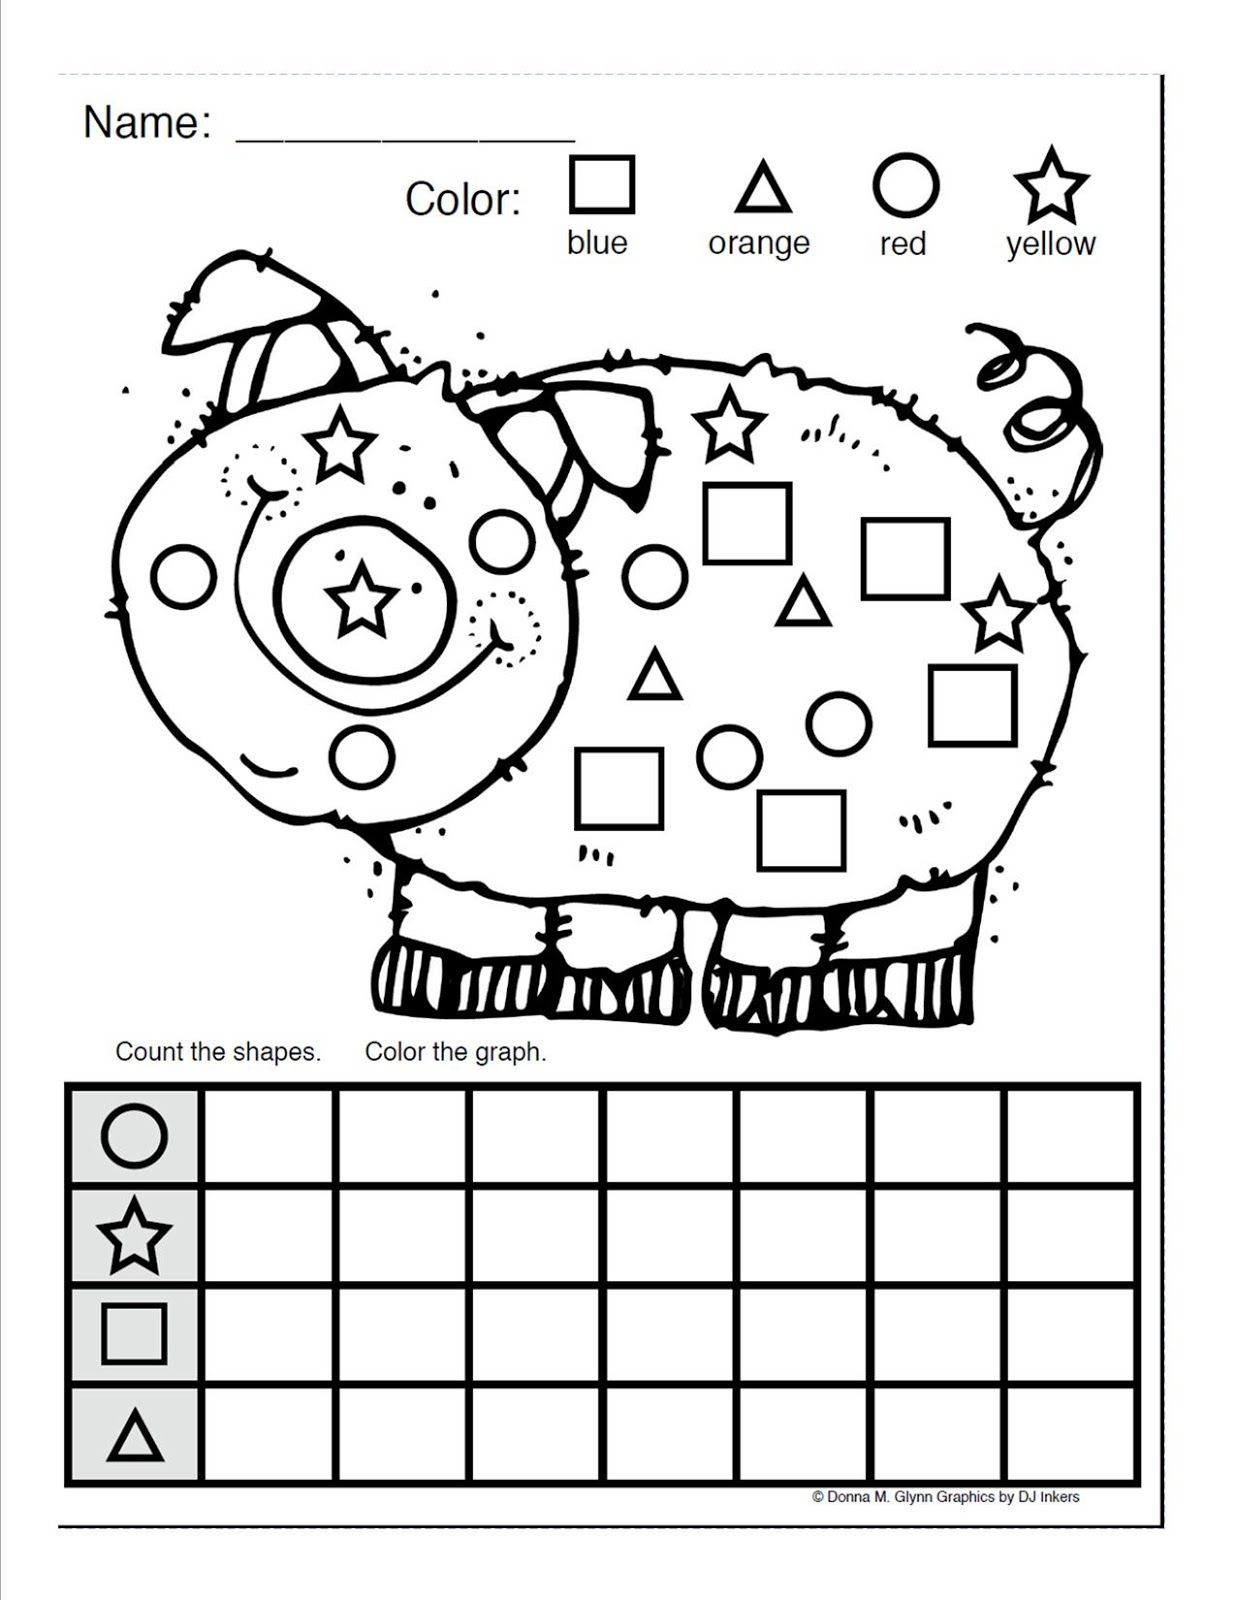 Color And Count The Shapes